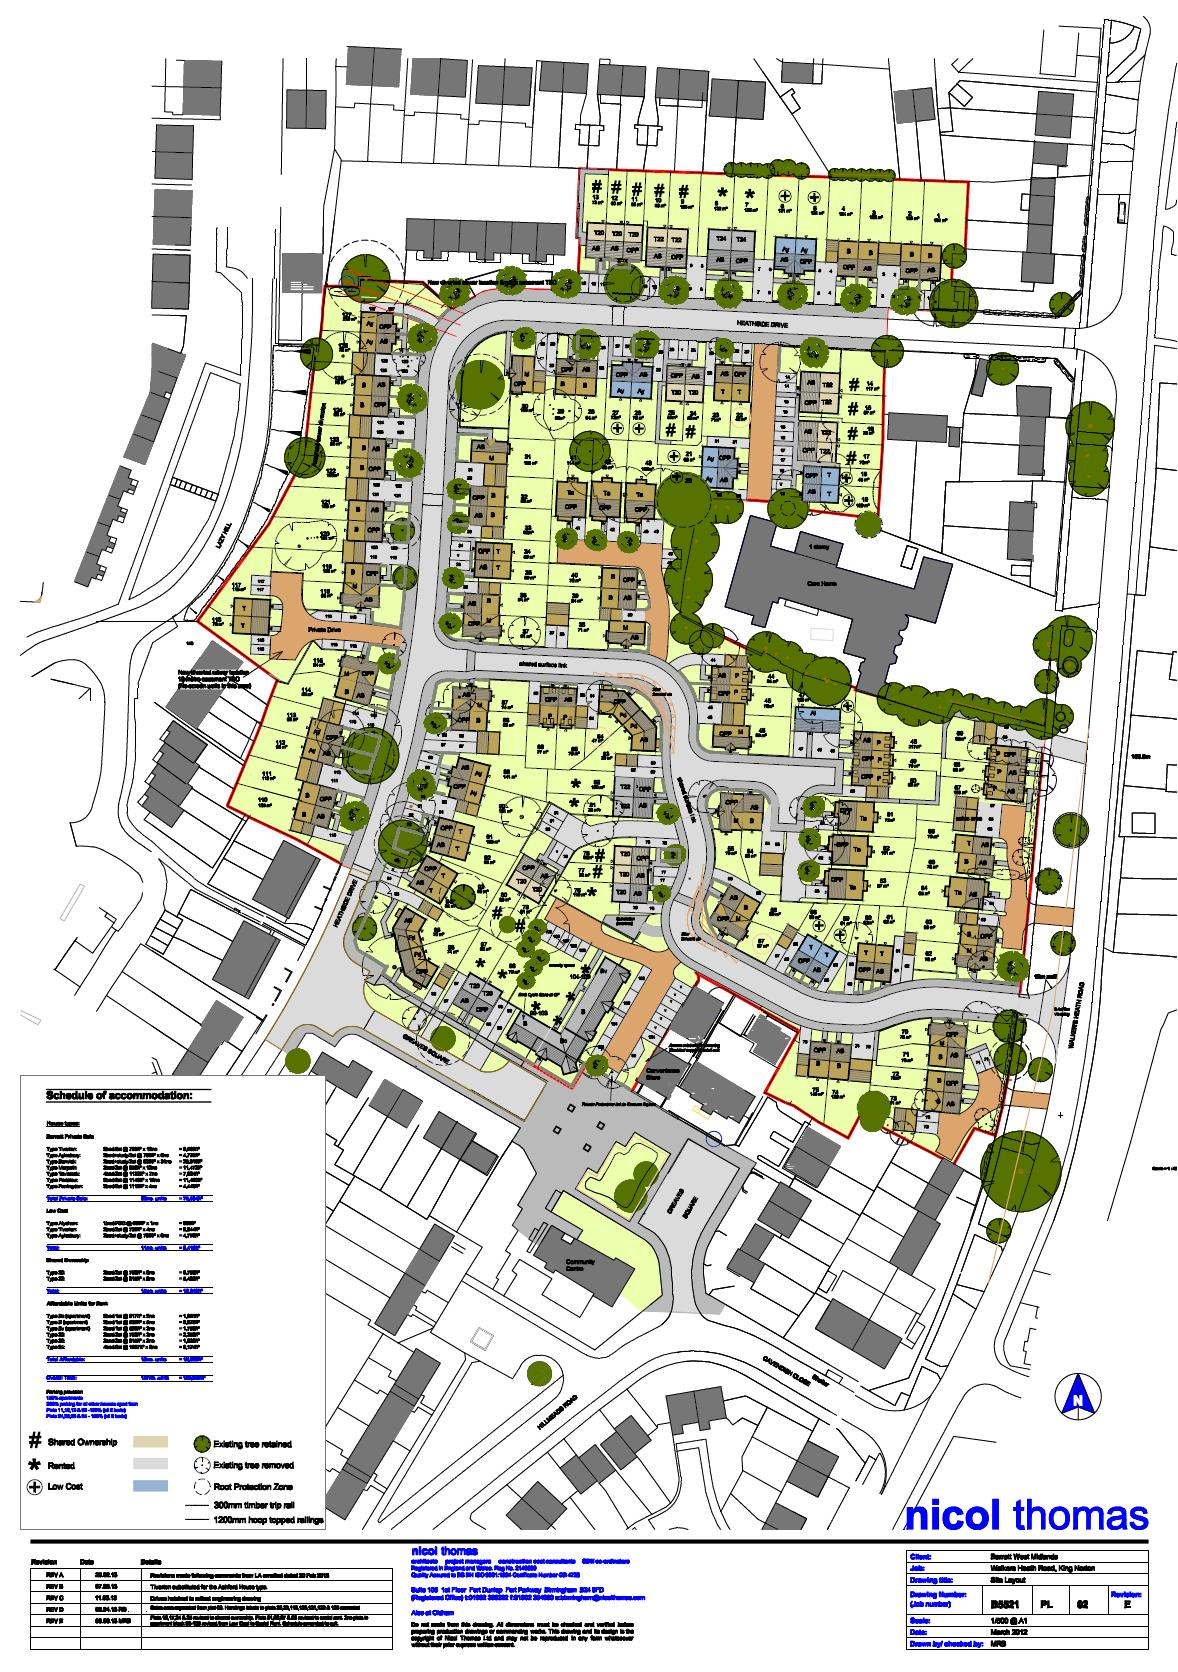 A downloadable version of the site plan is available here for Site plans online